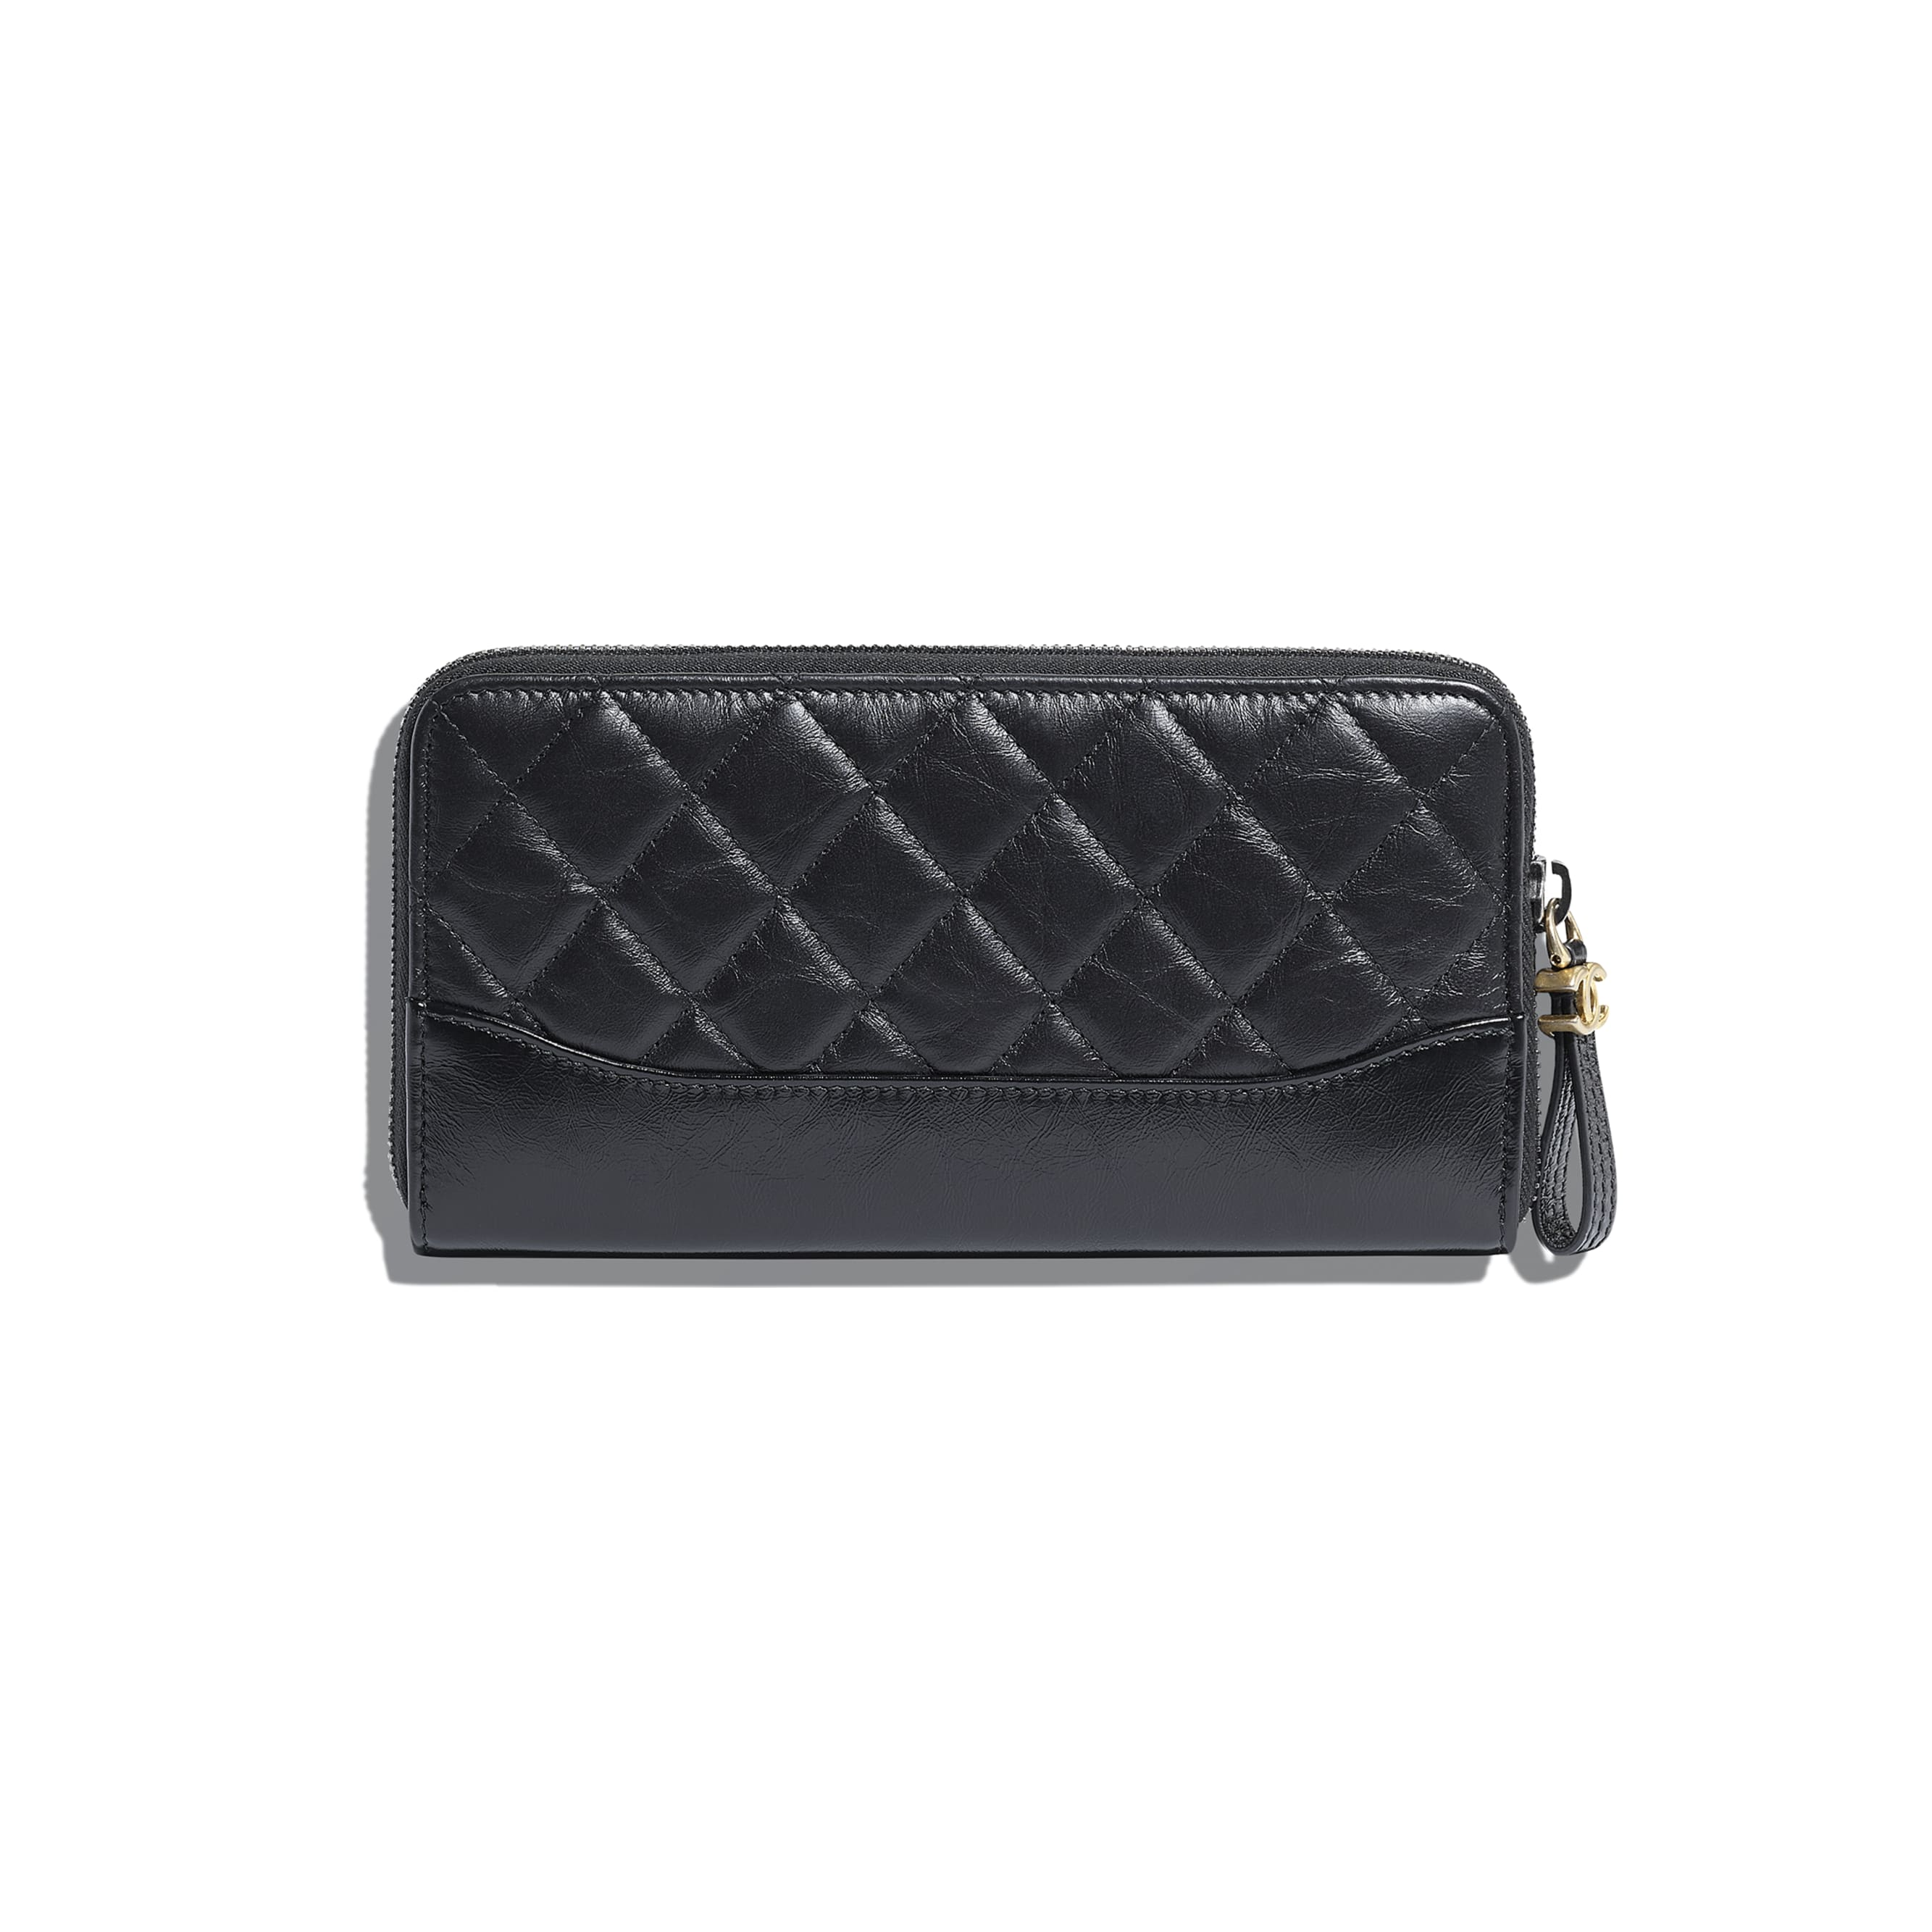 Long Zipped Wallet - Black - Aged Calfskin, Smooth Calfskin, Gold-Tone, Silver-Tone & Ruthenium-Finish Metal - CHANEL - Alternative view - see standard sized version